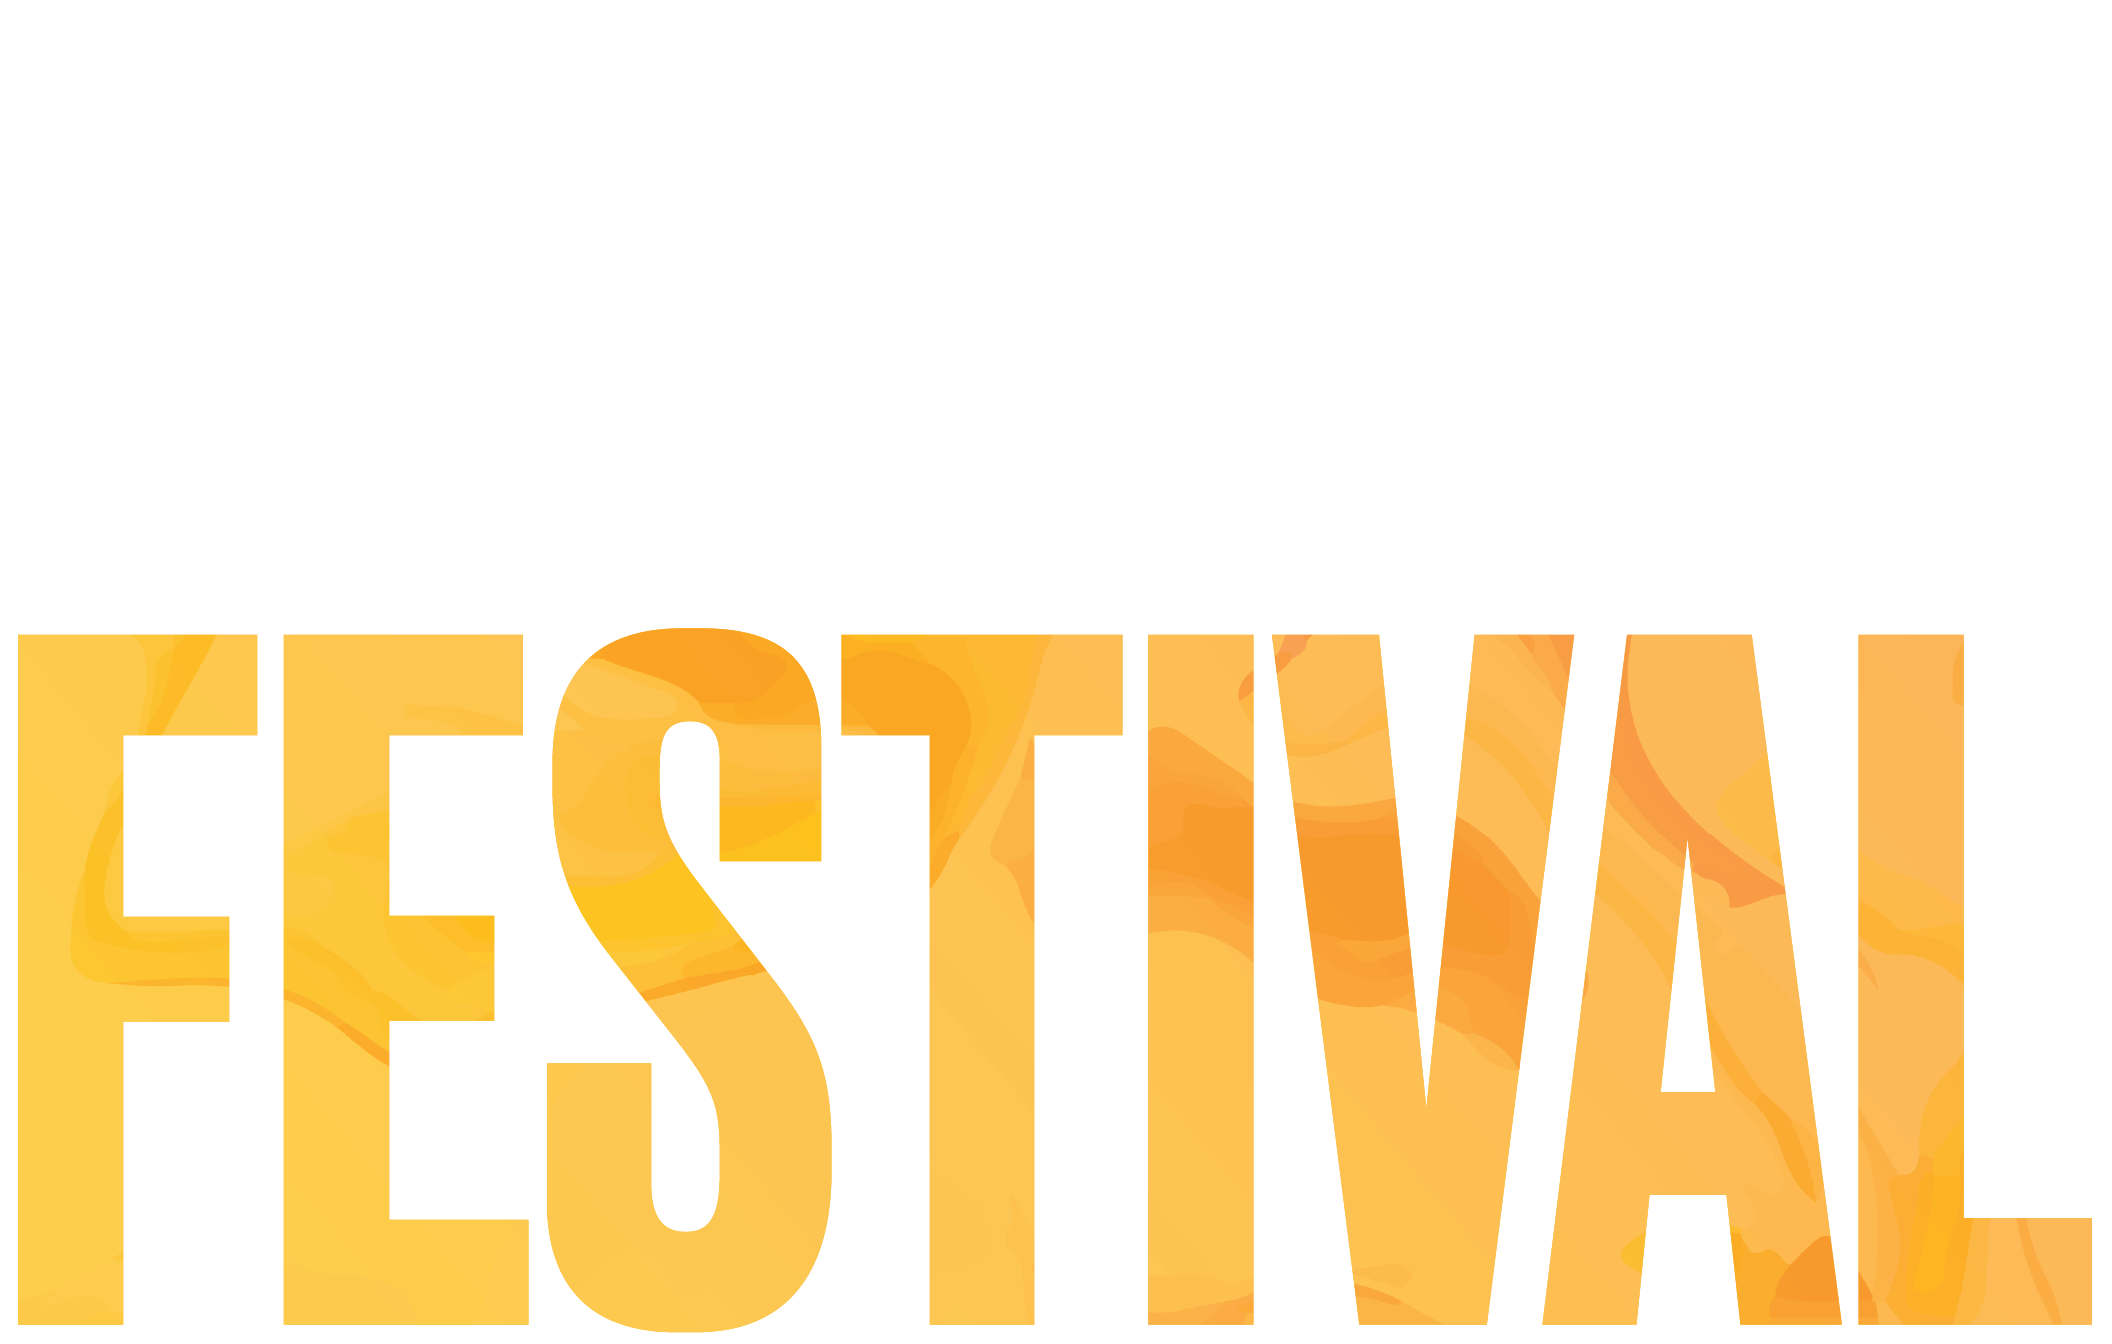 The Atlantic Festival 2018 logo